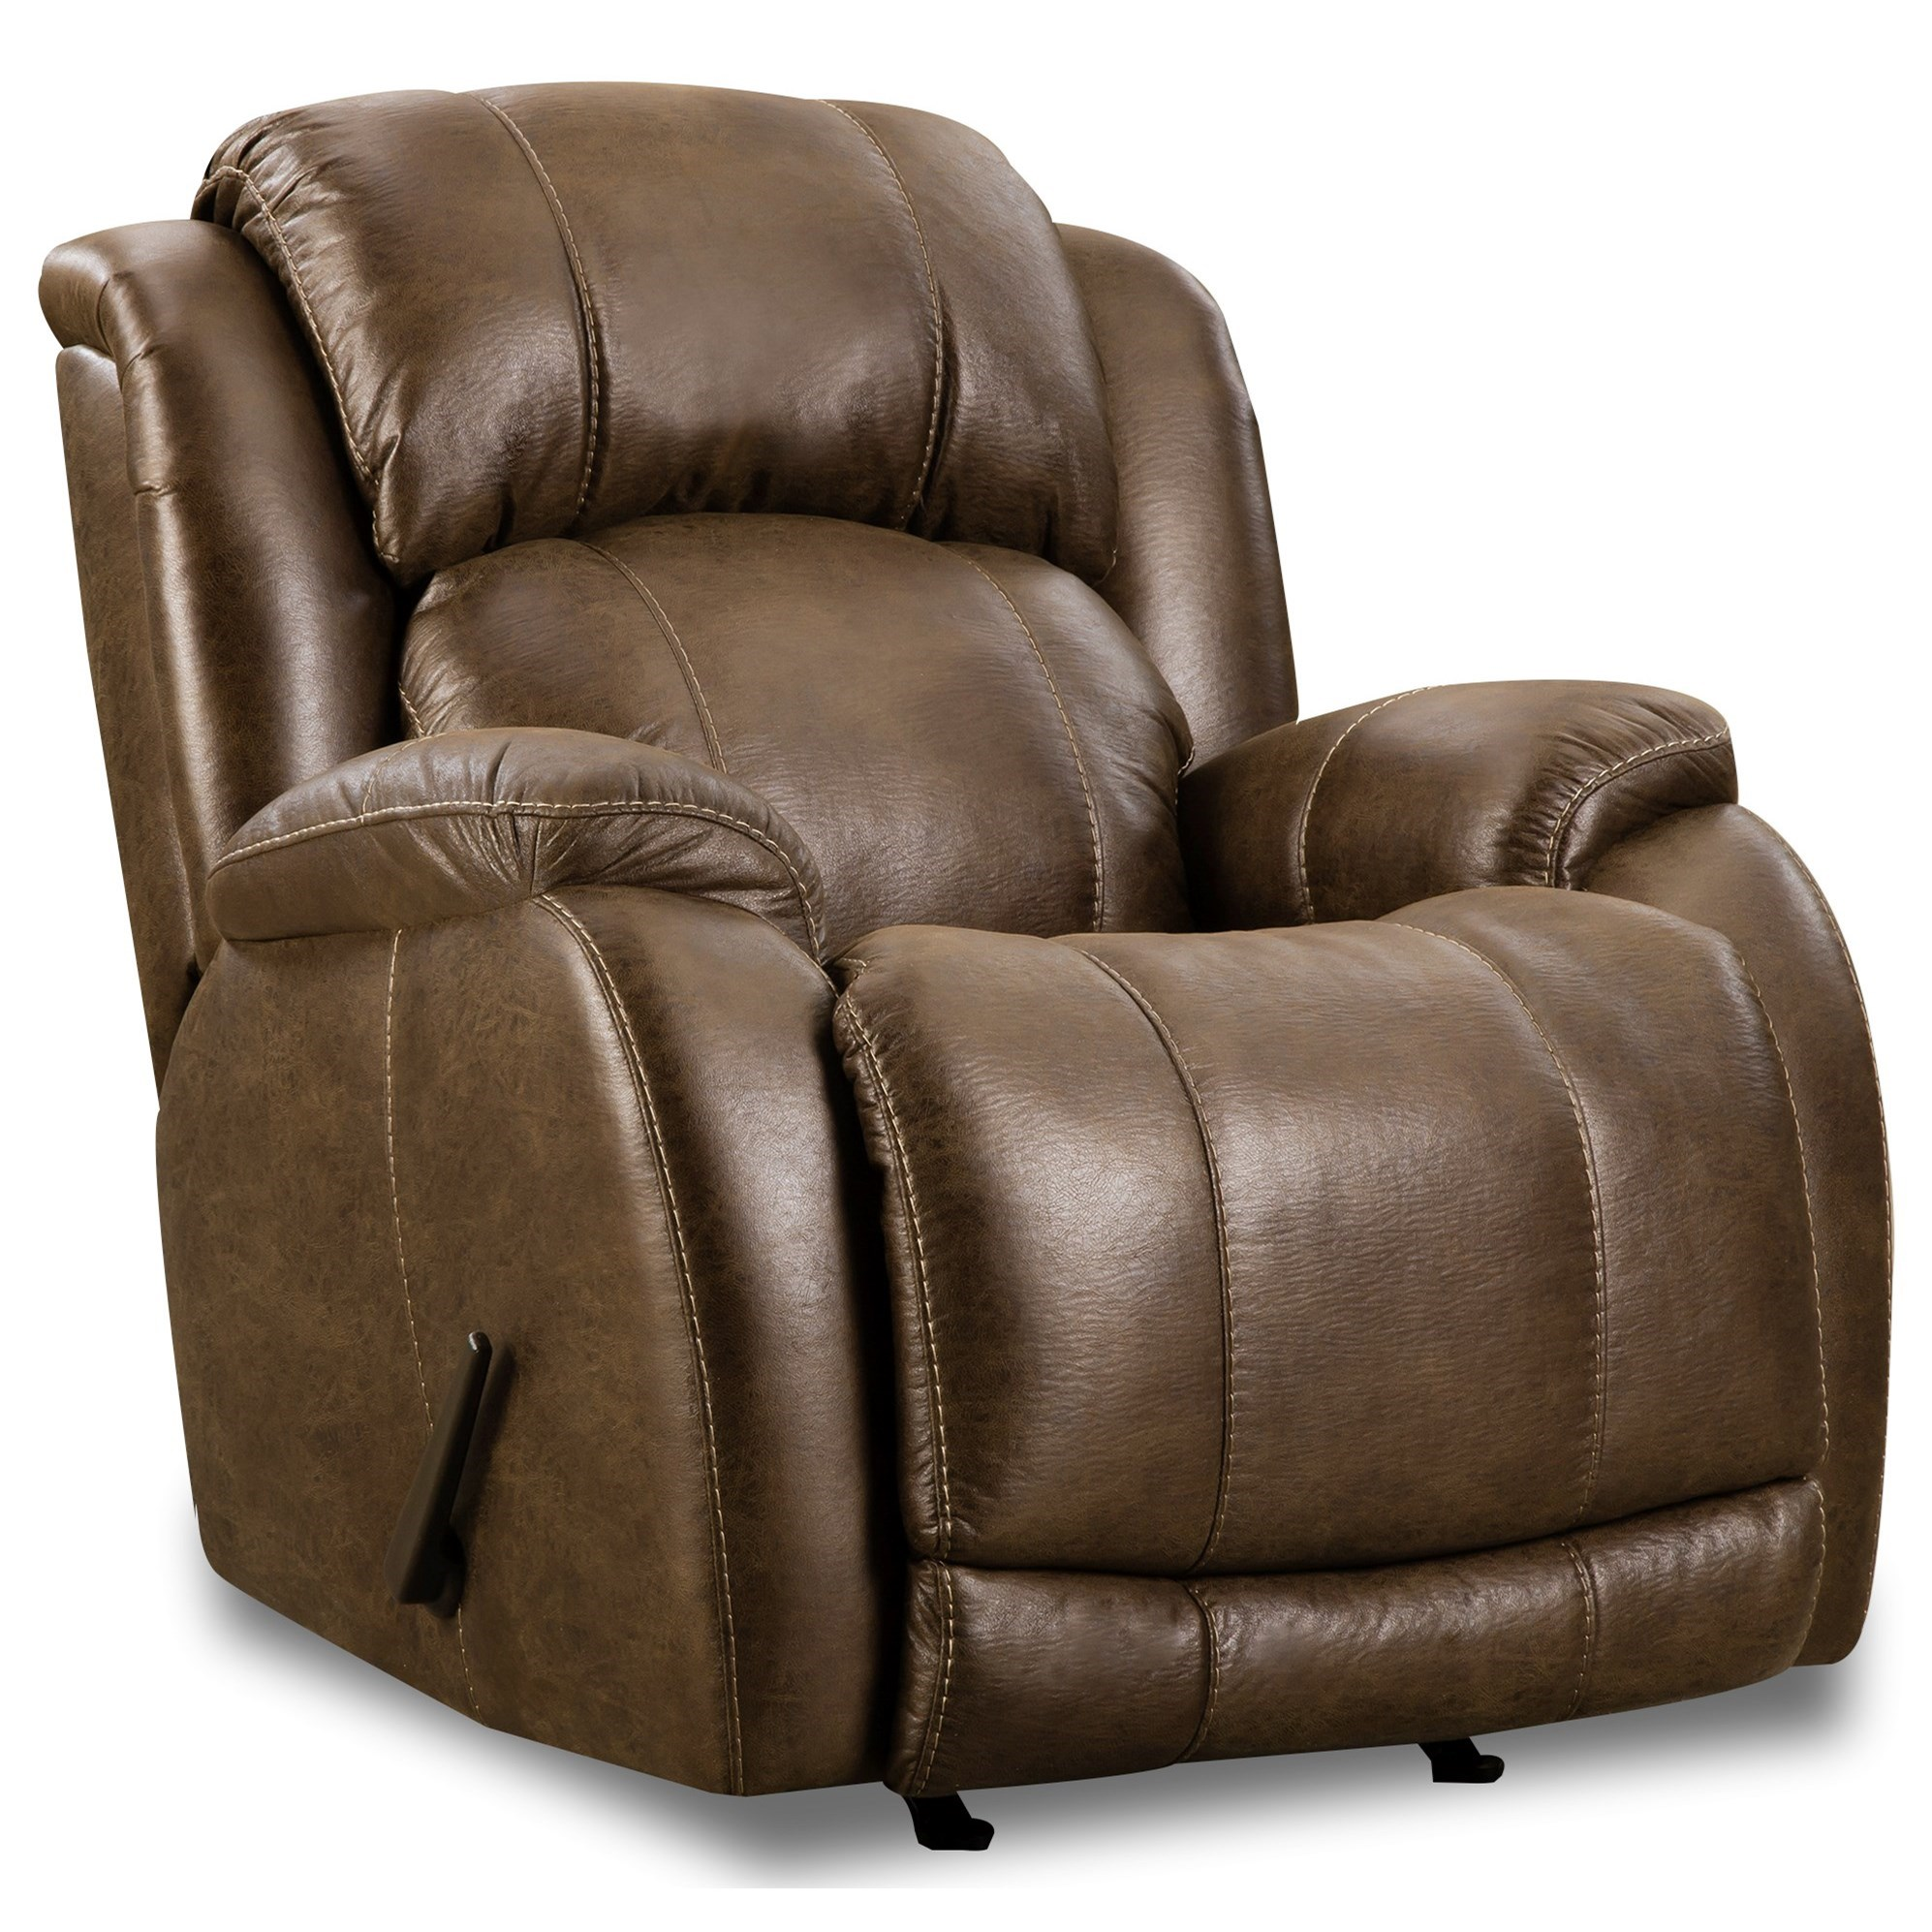 Denali Rocker Recliner by HomeStretch at Gill Brothers Furniture